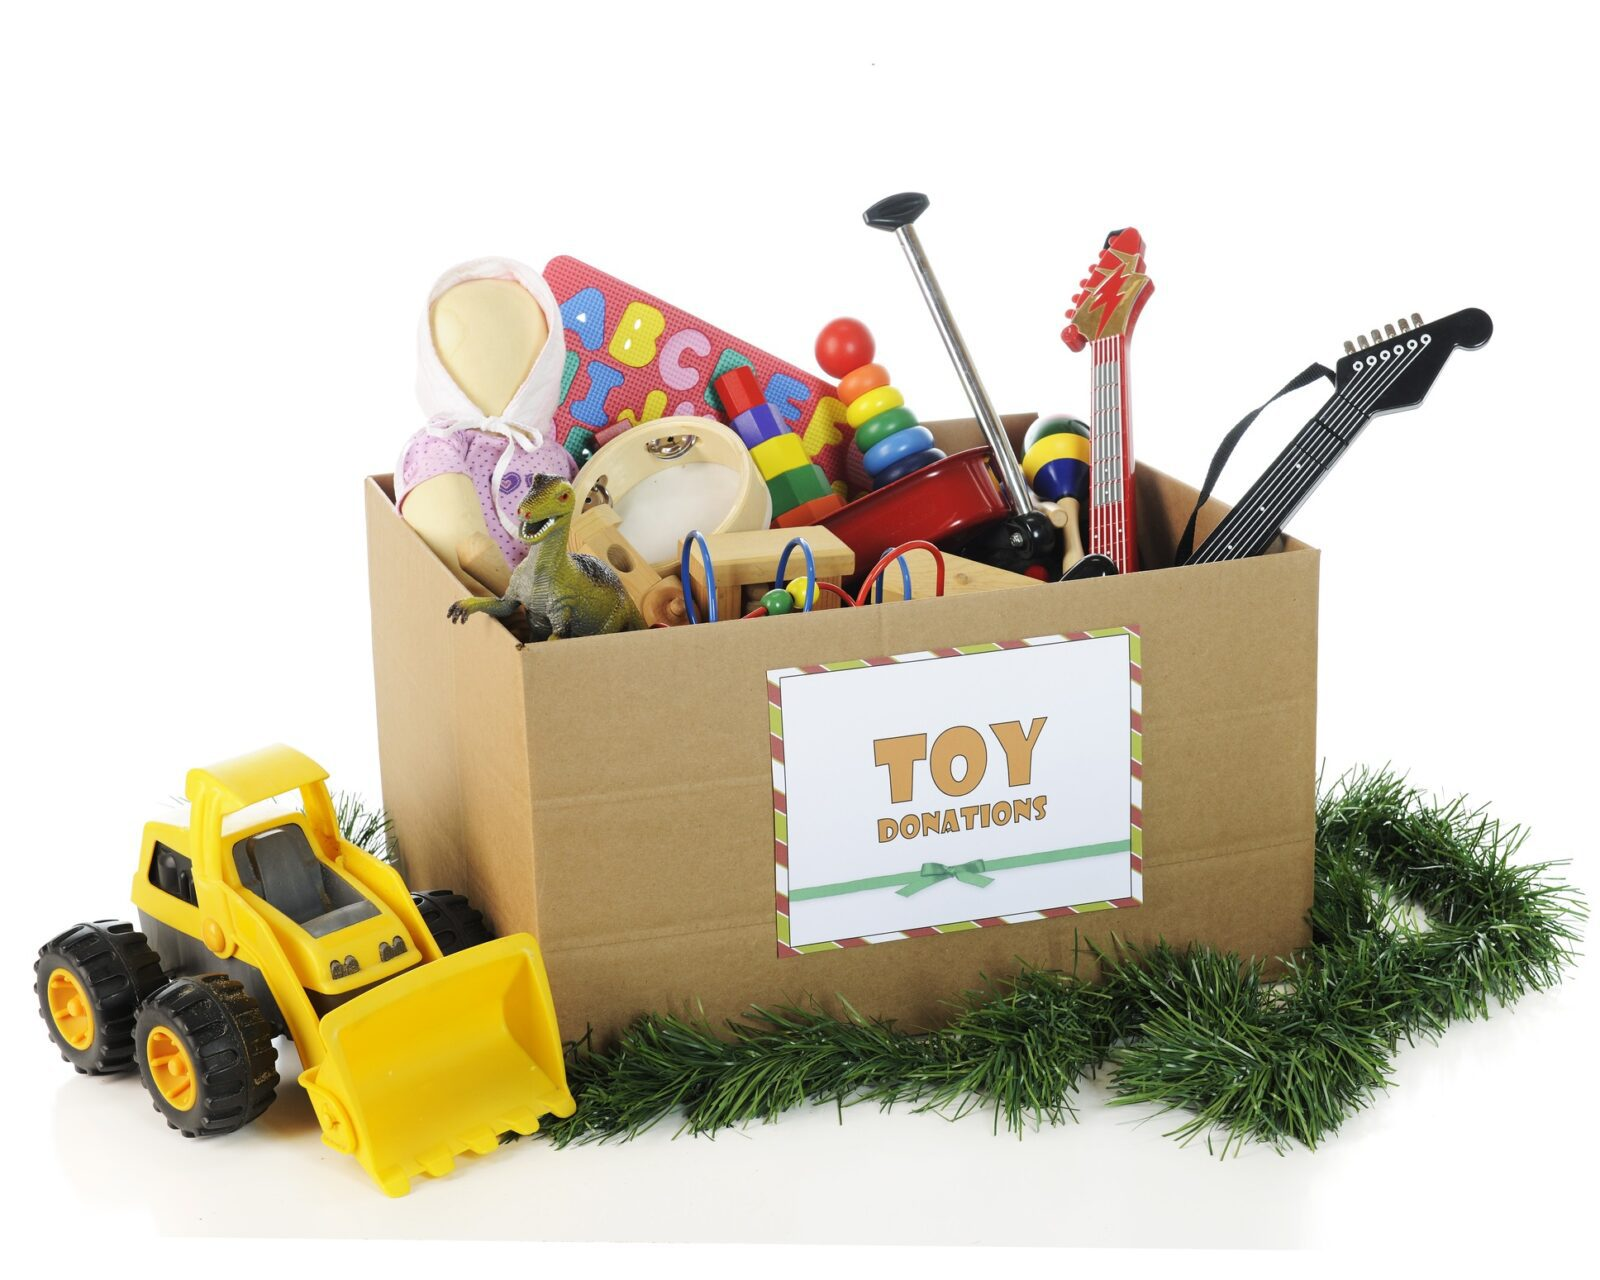 Toys for Tots, Toys in Donation Box, Toy Truck, Toy Guitar, Toy Wagon, Doll, Christmas Donations